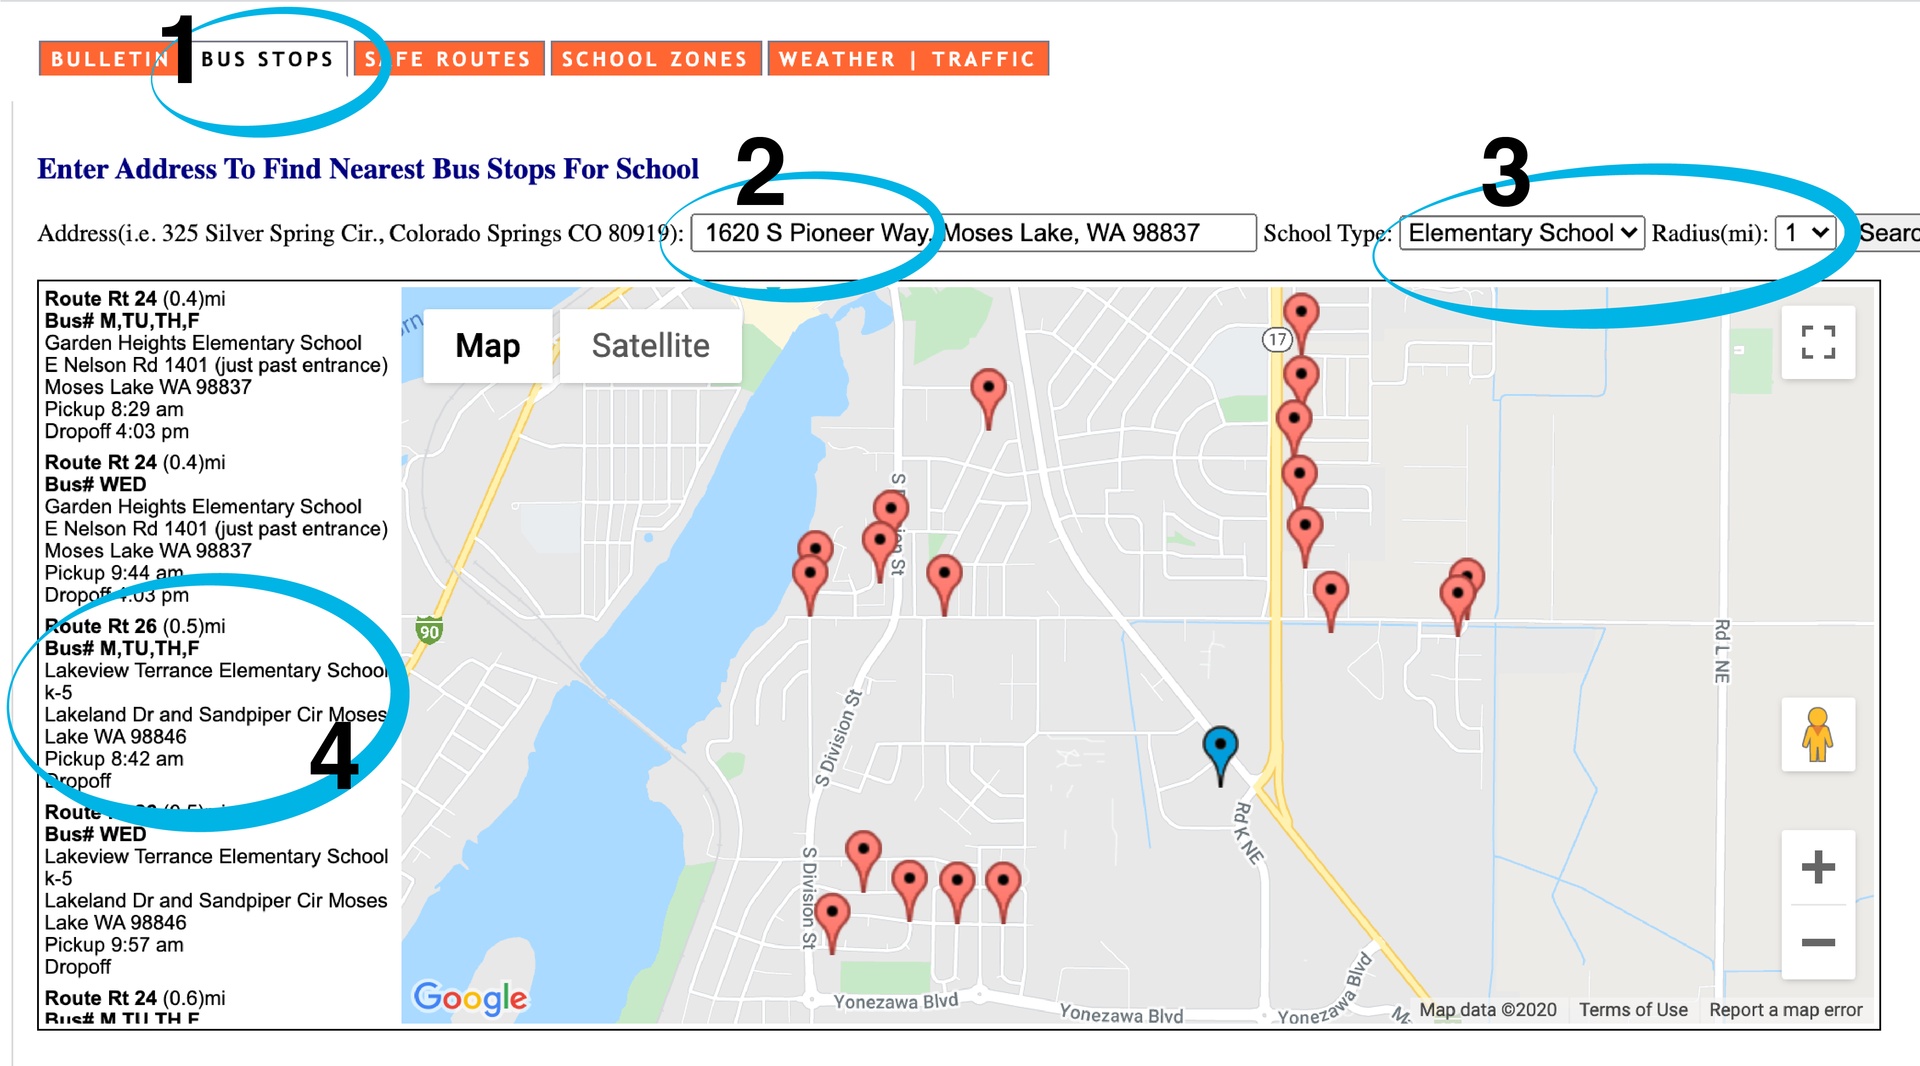 How to find route